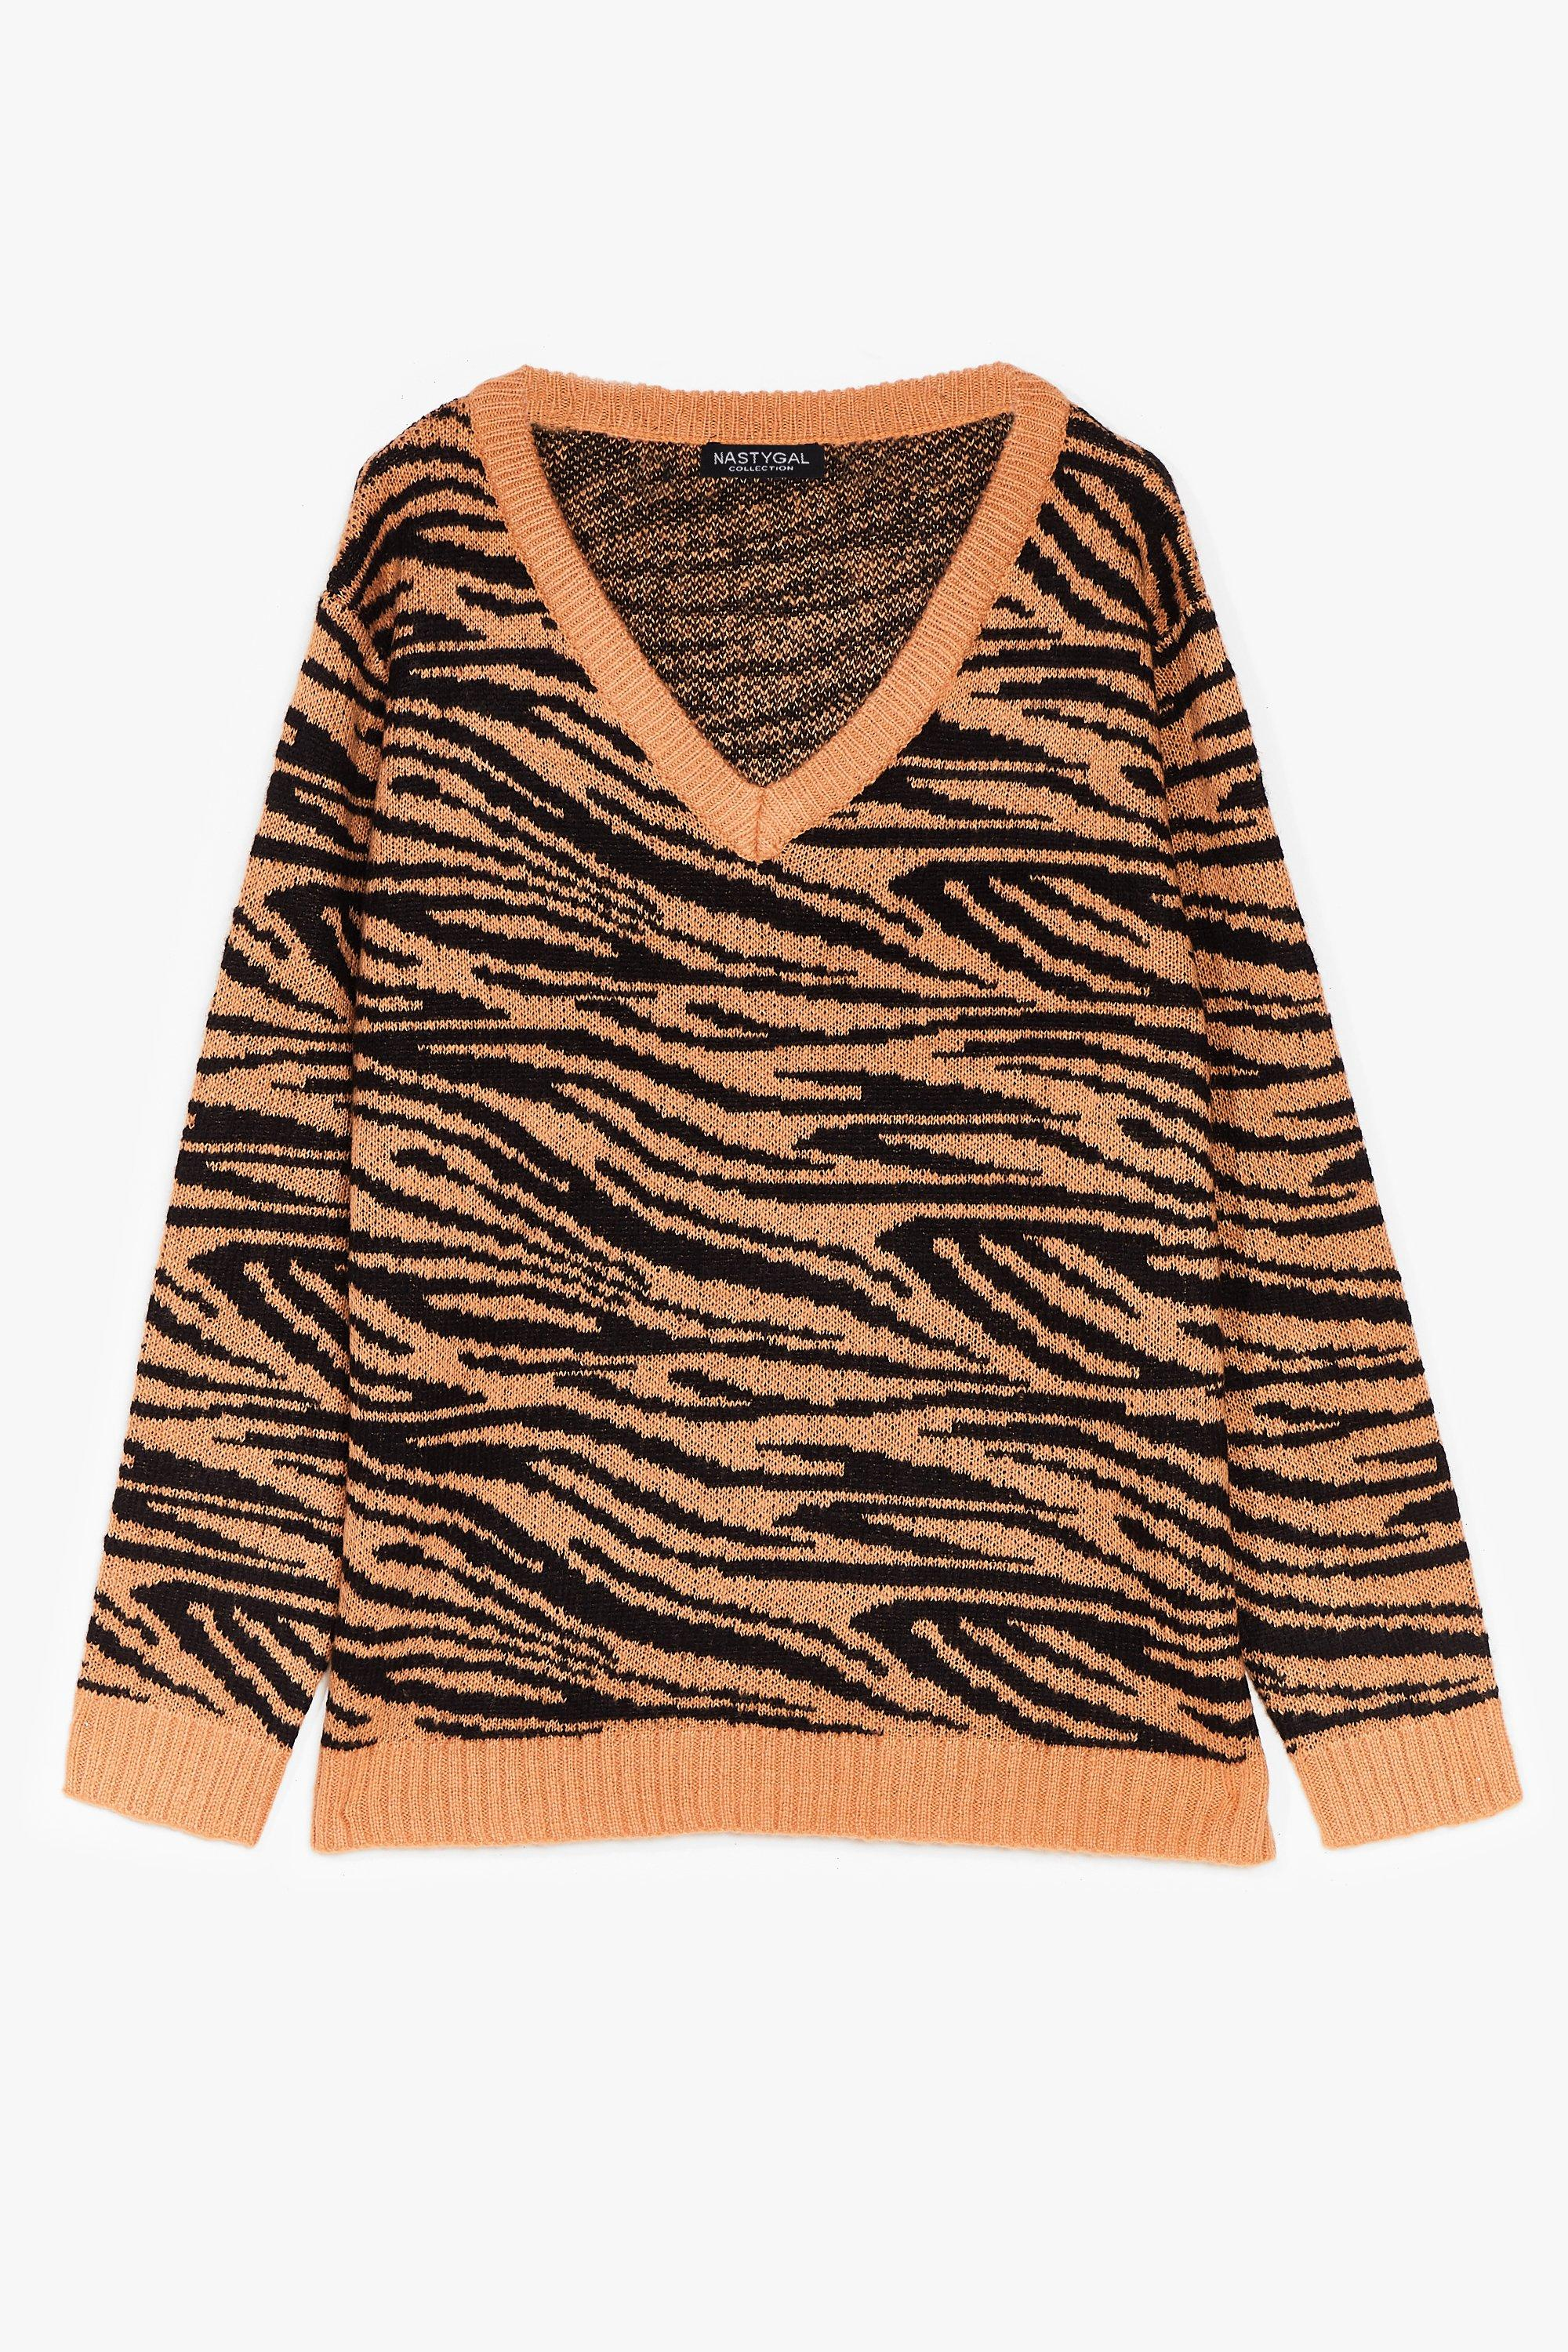 Herd You Callin' Plus Knit Zebra Sweater 7